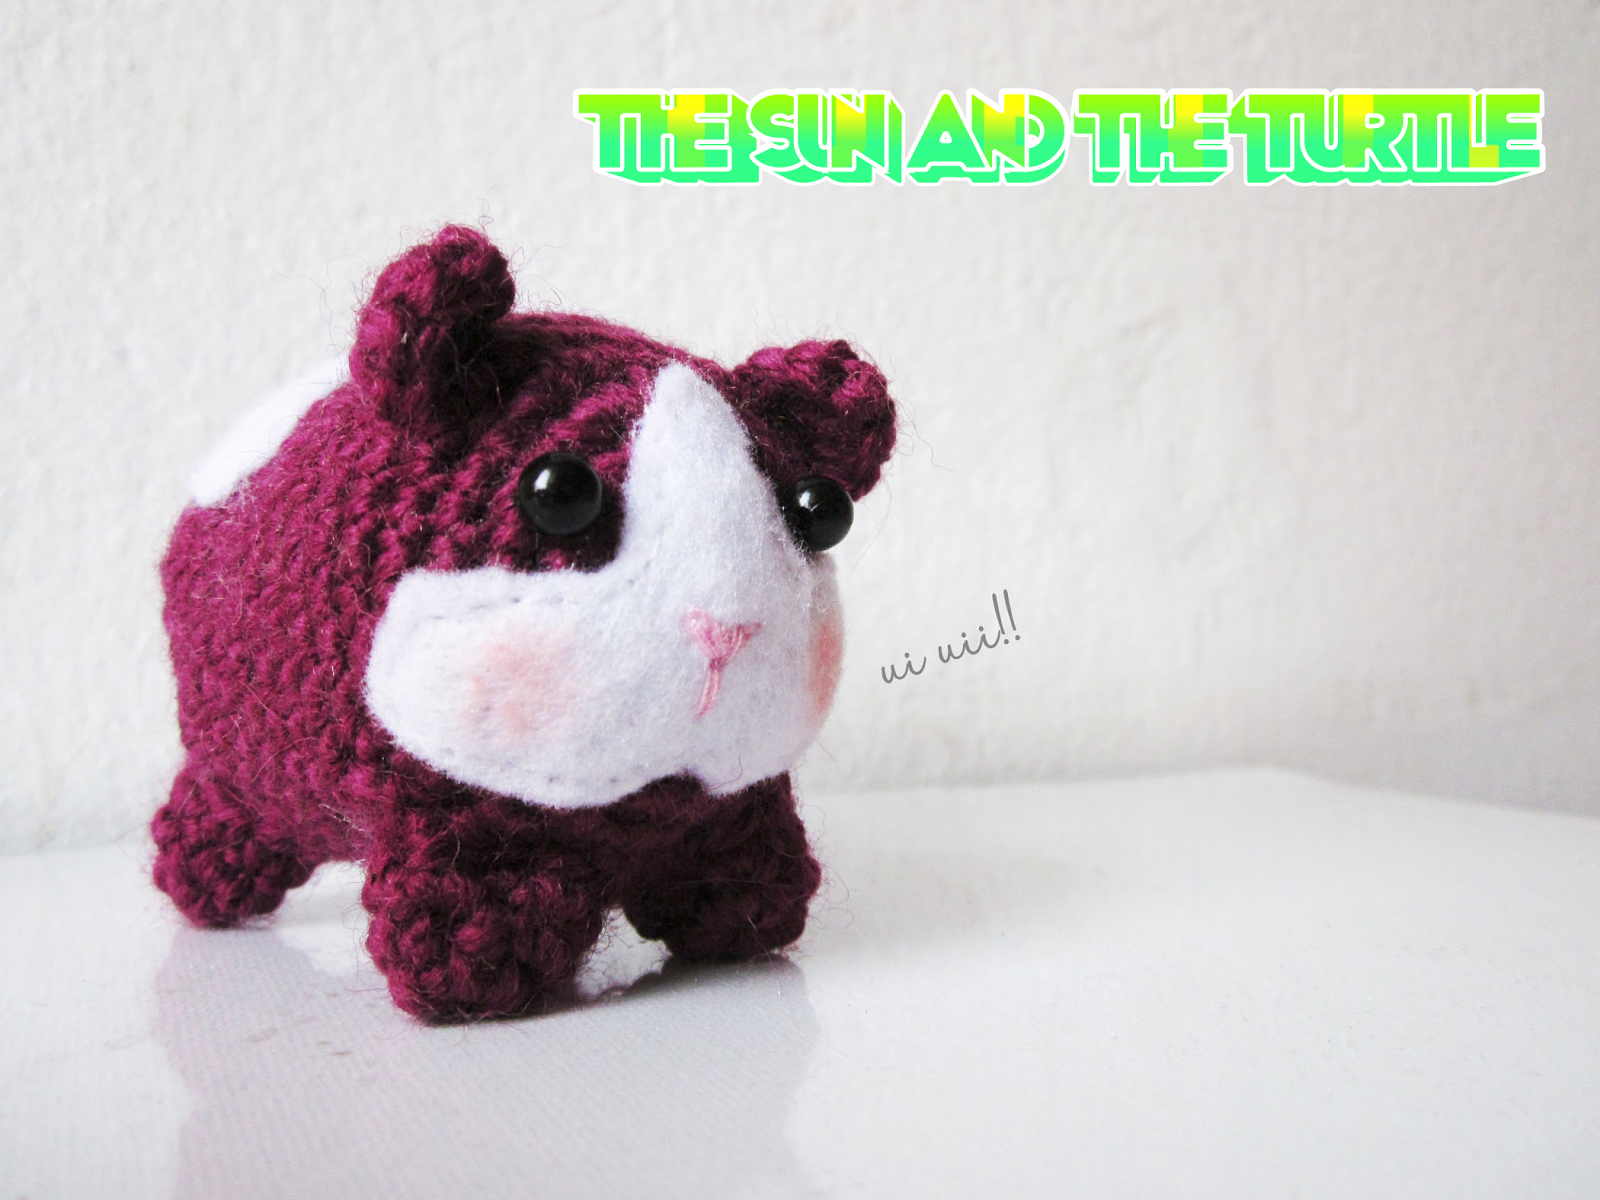 Amigurumi Guinea Pig : Amigurumi guinea pig free crochet pattern the sun and the turtle